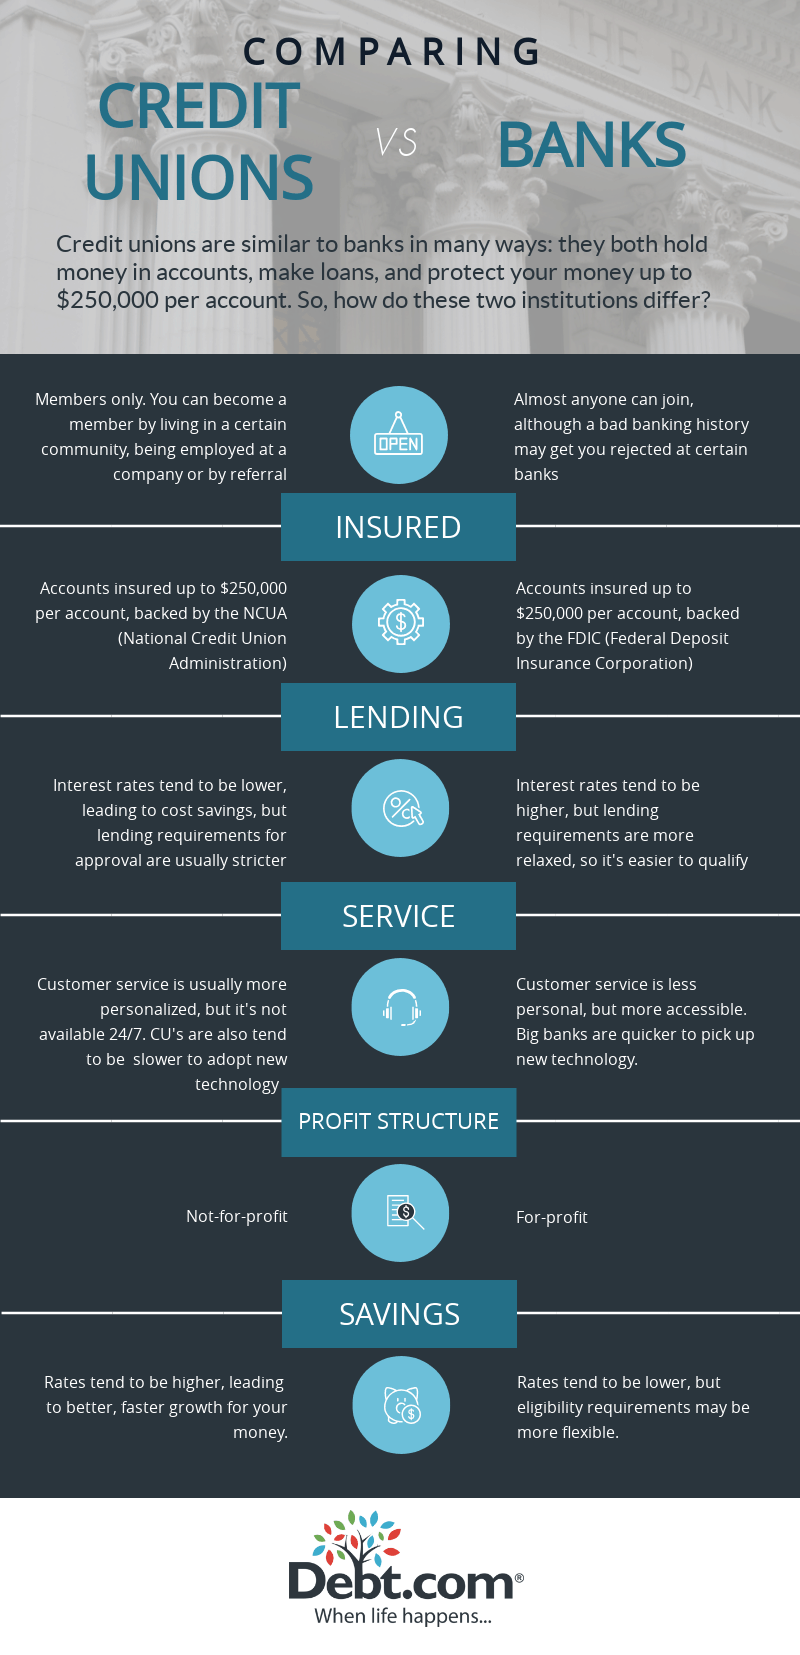 Debt.com infographic comparing credit unions vs banks side-by-side